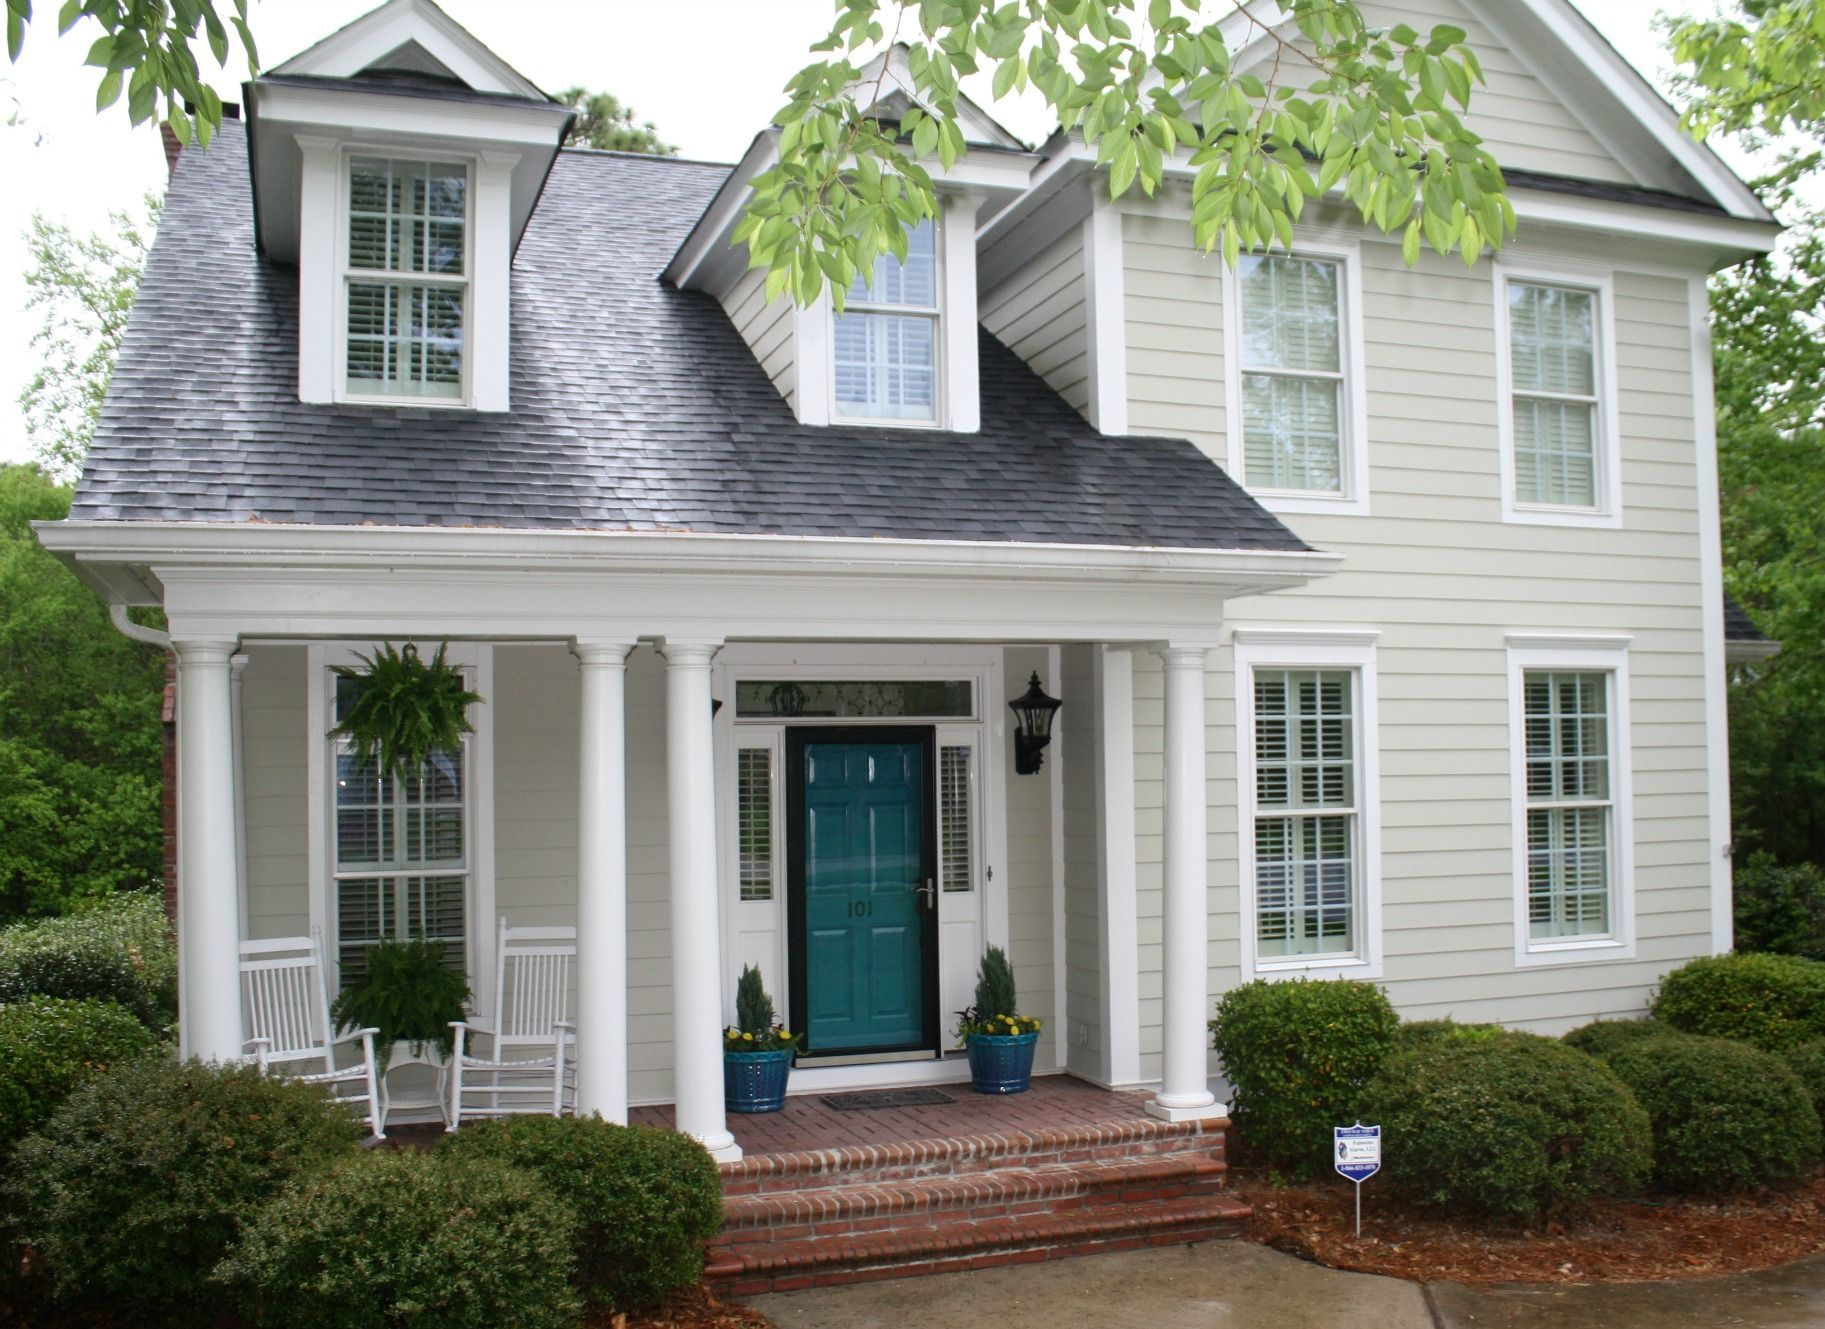 behr essential teal front door amy spencer interiors in on behr exterior house paint photos id=91386